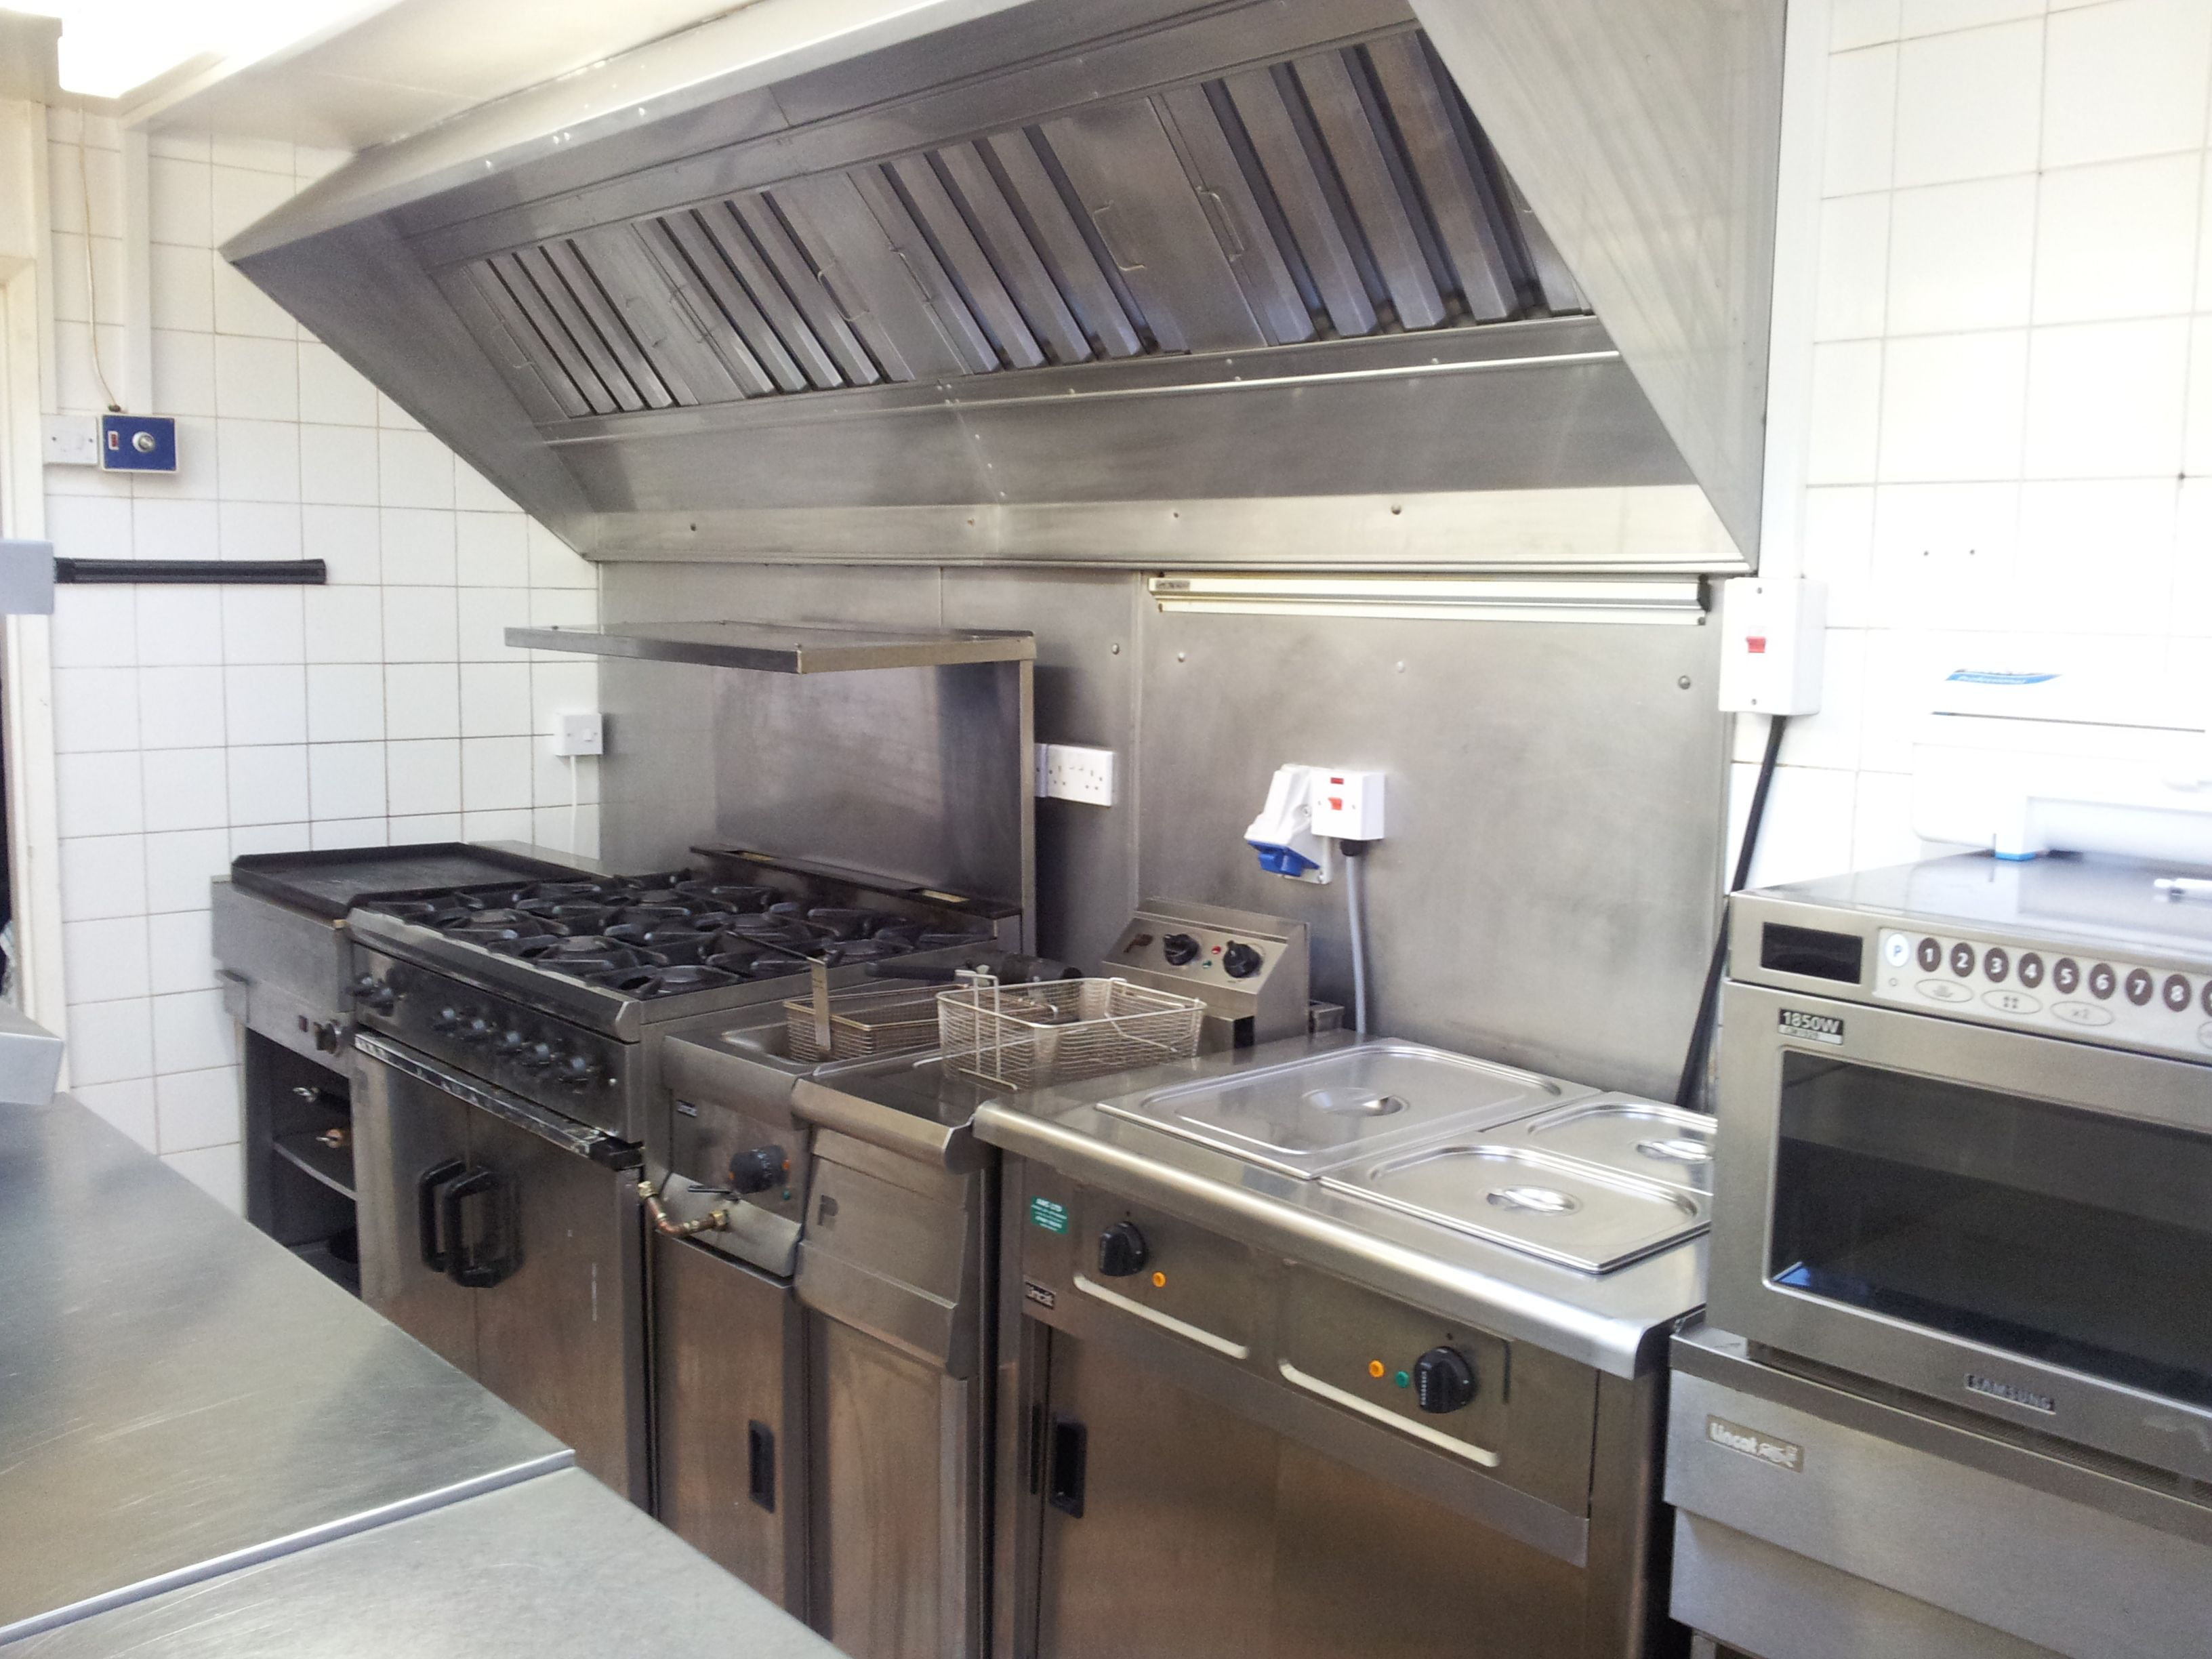 Small Restaurant Kitchen Layout maneuvering in small kitchen spaces http://www.tigerchef/blog